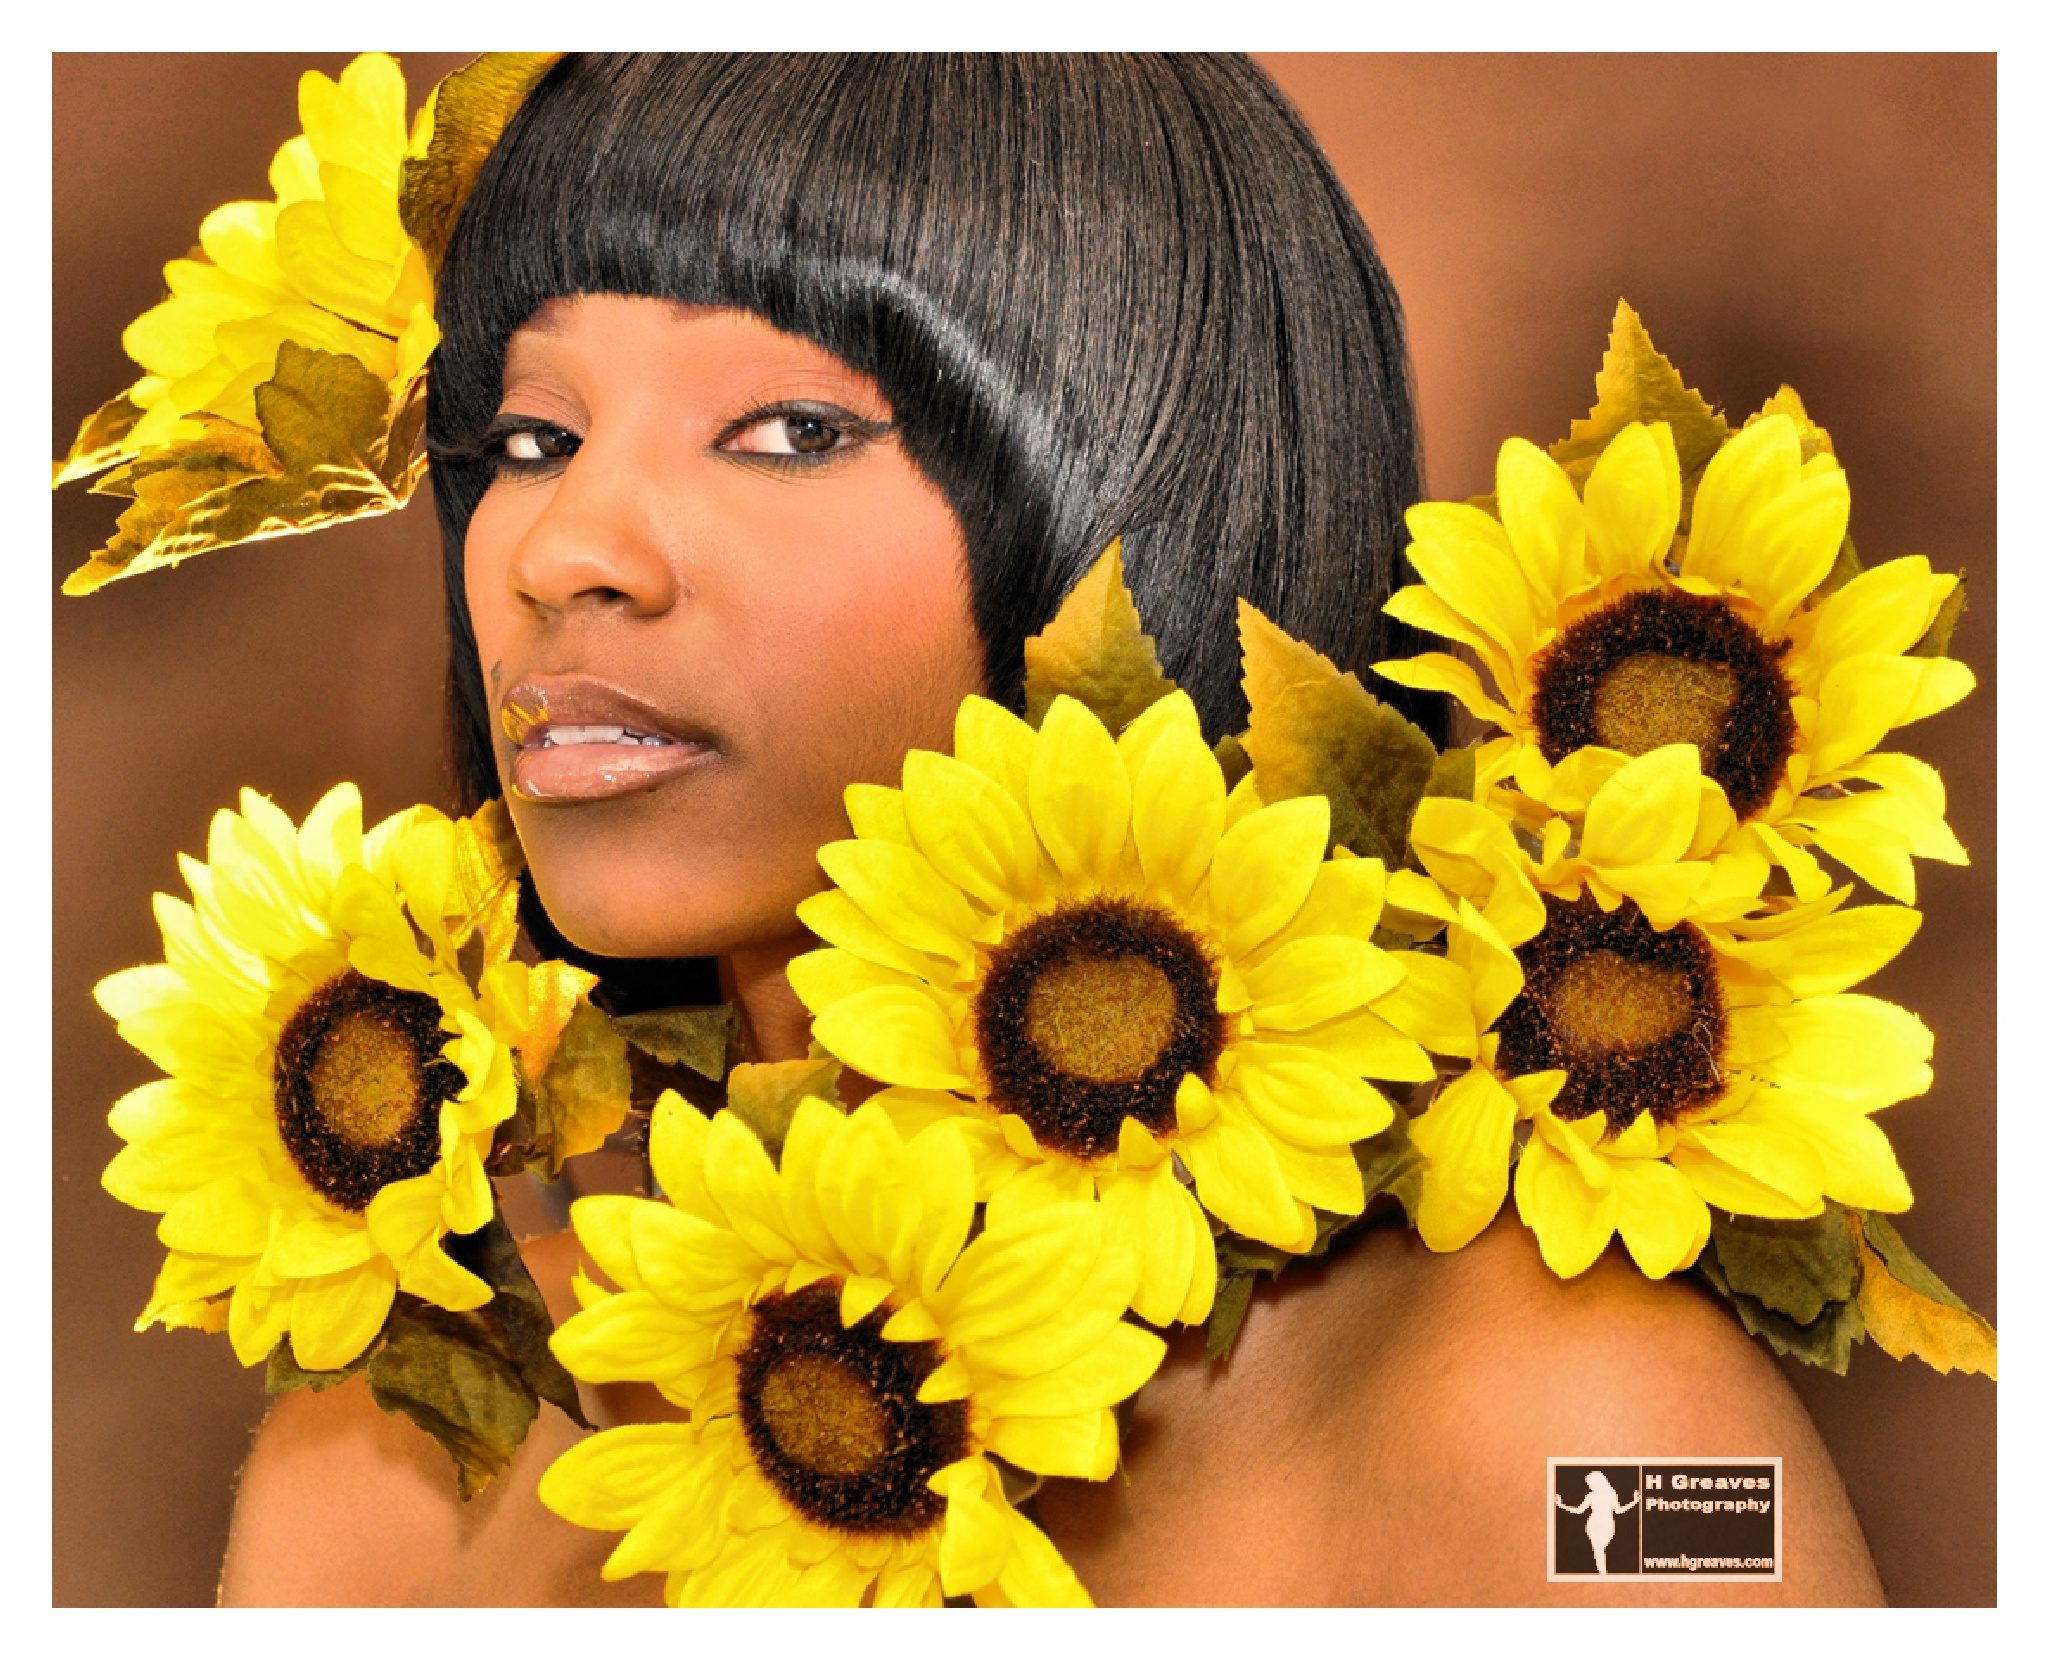 Sunflower by Harold HGreavesphotography Greaves